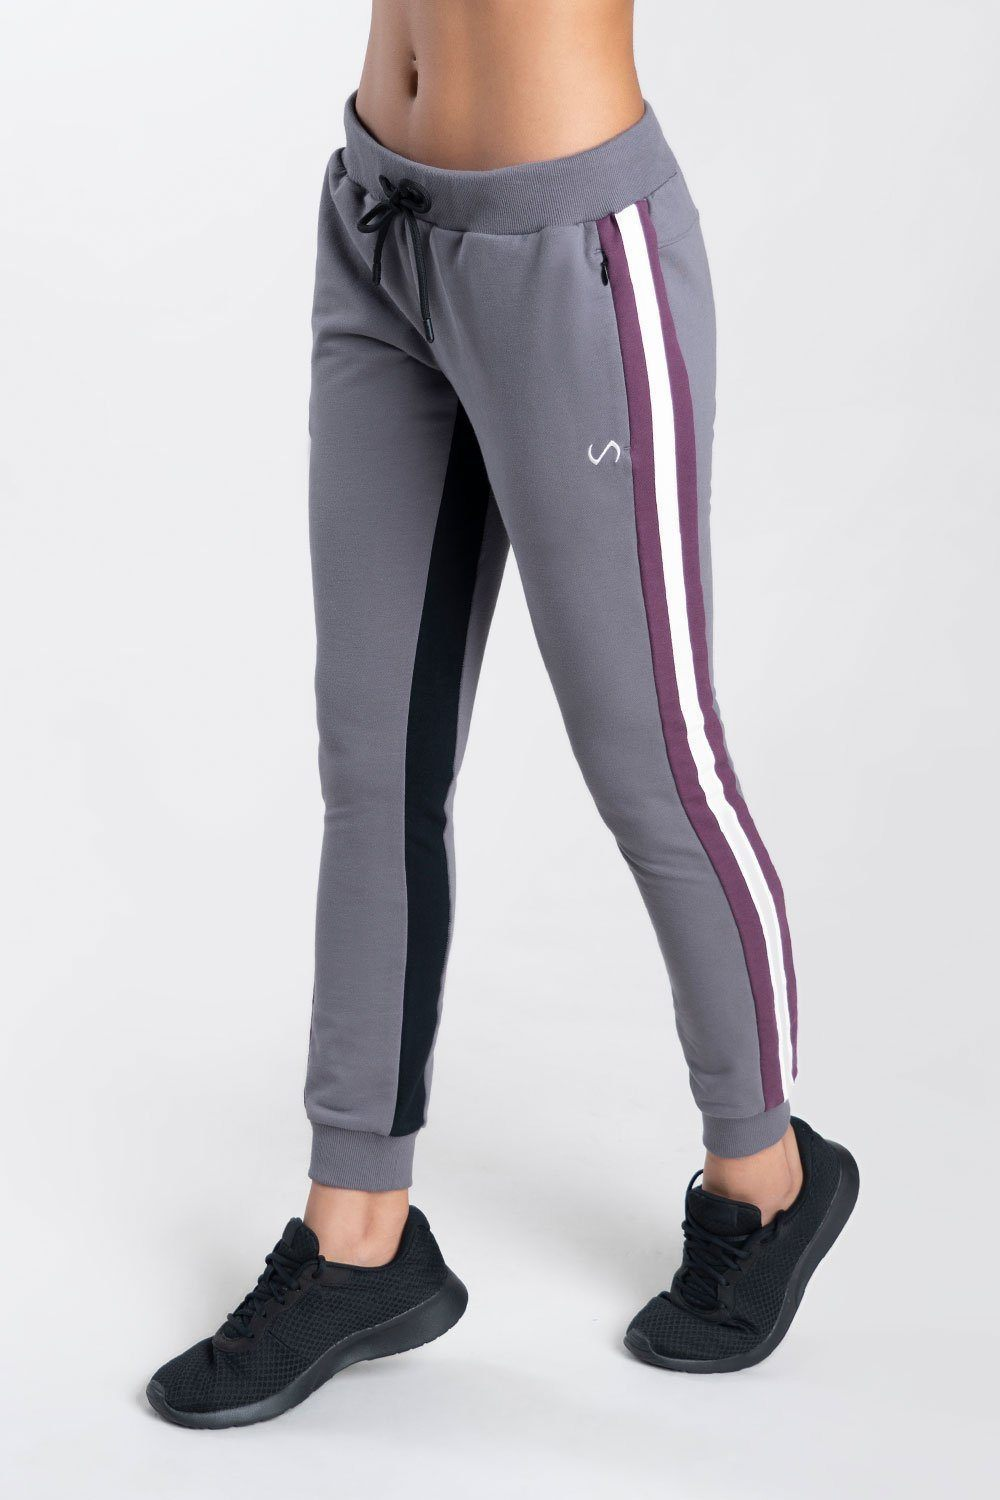 TLF Aceso Jogger - Joggers & Pants - TLF Apparel | Take Life Further